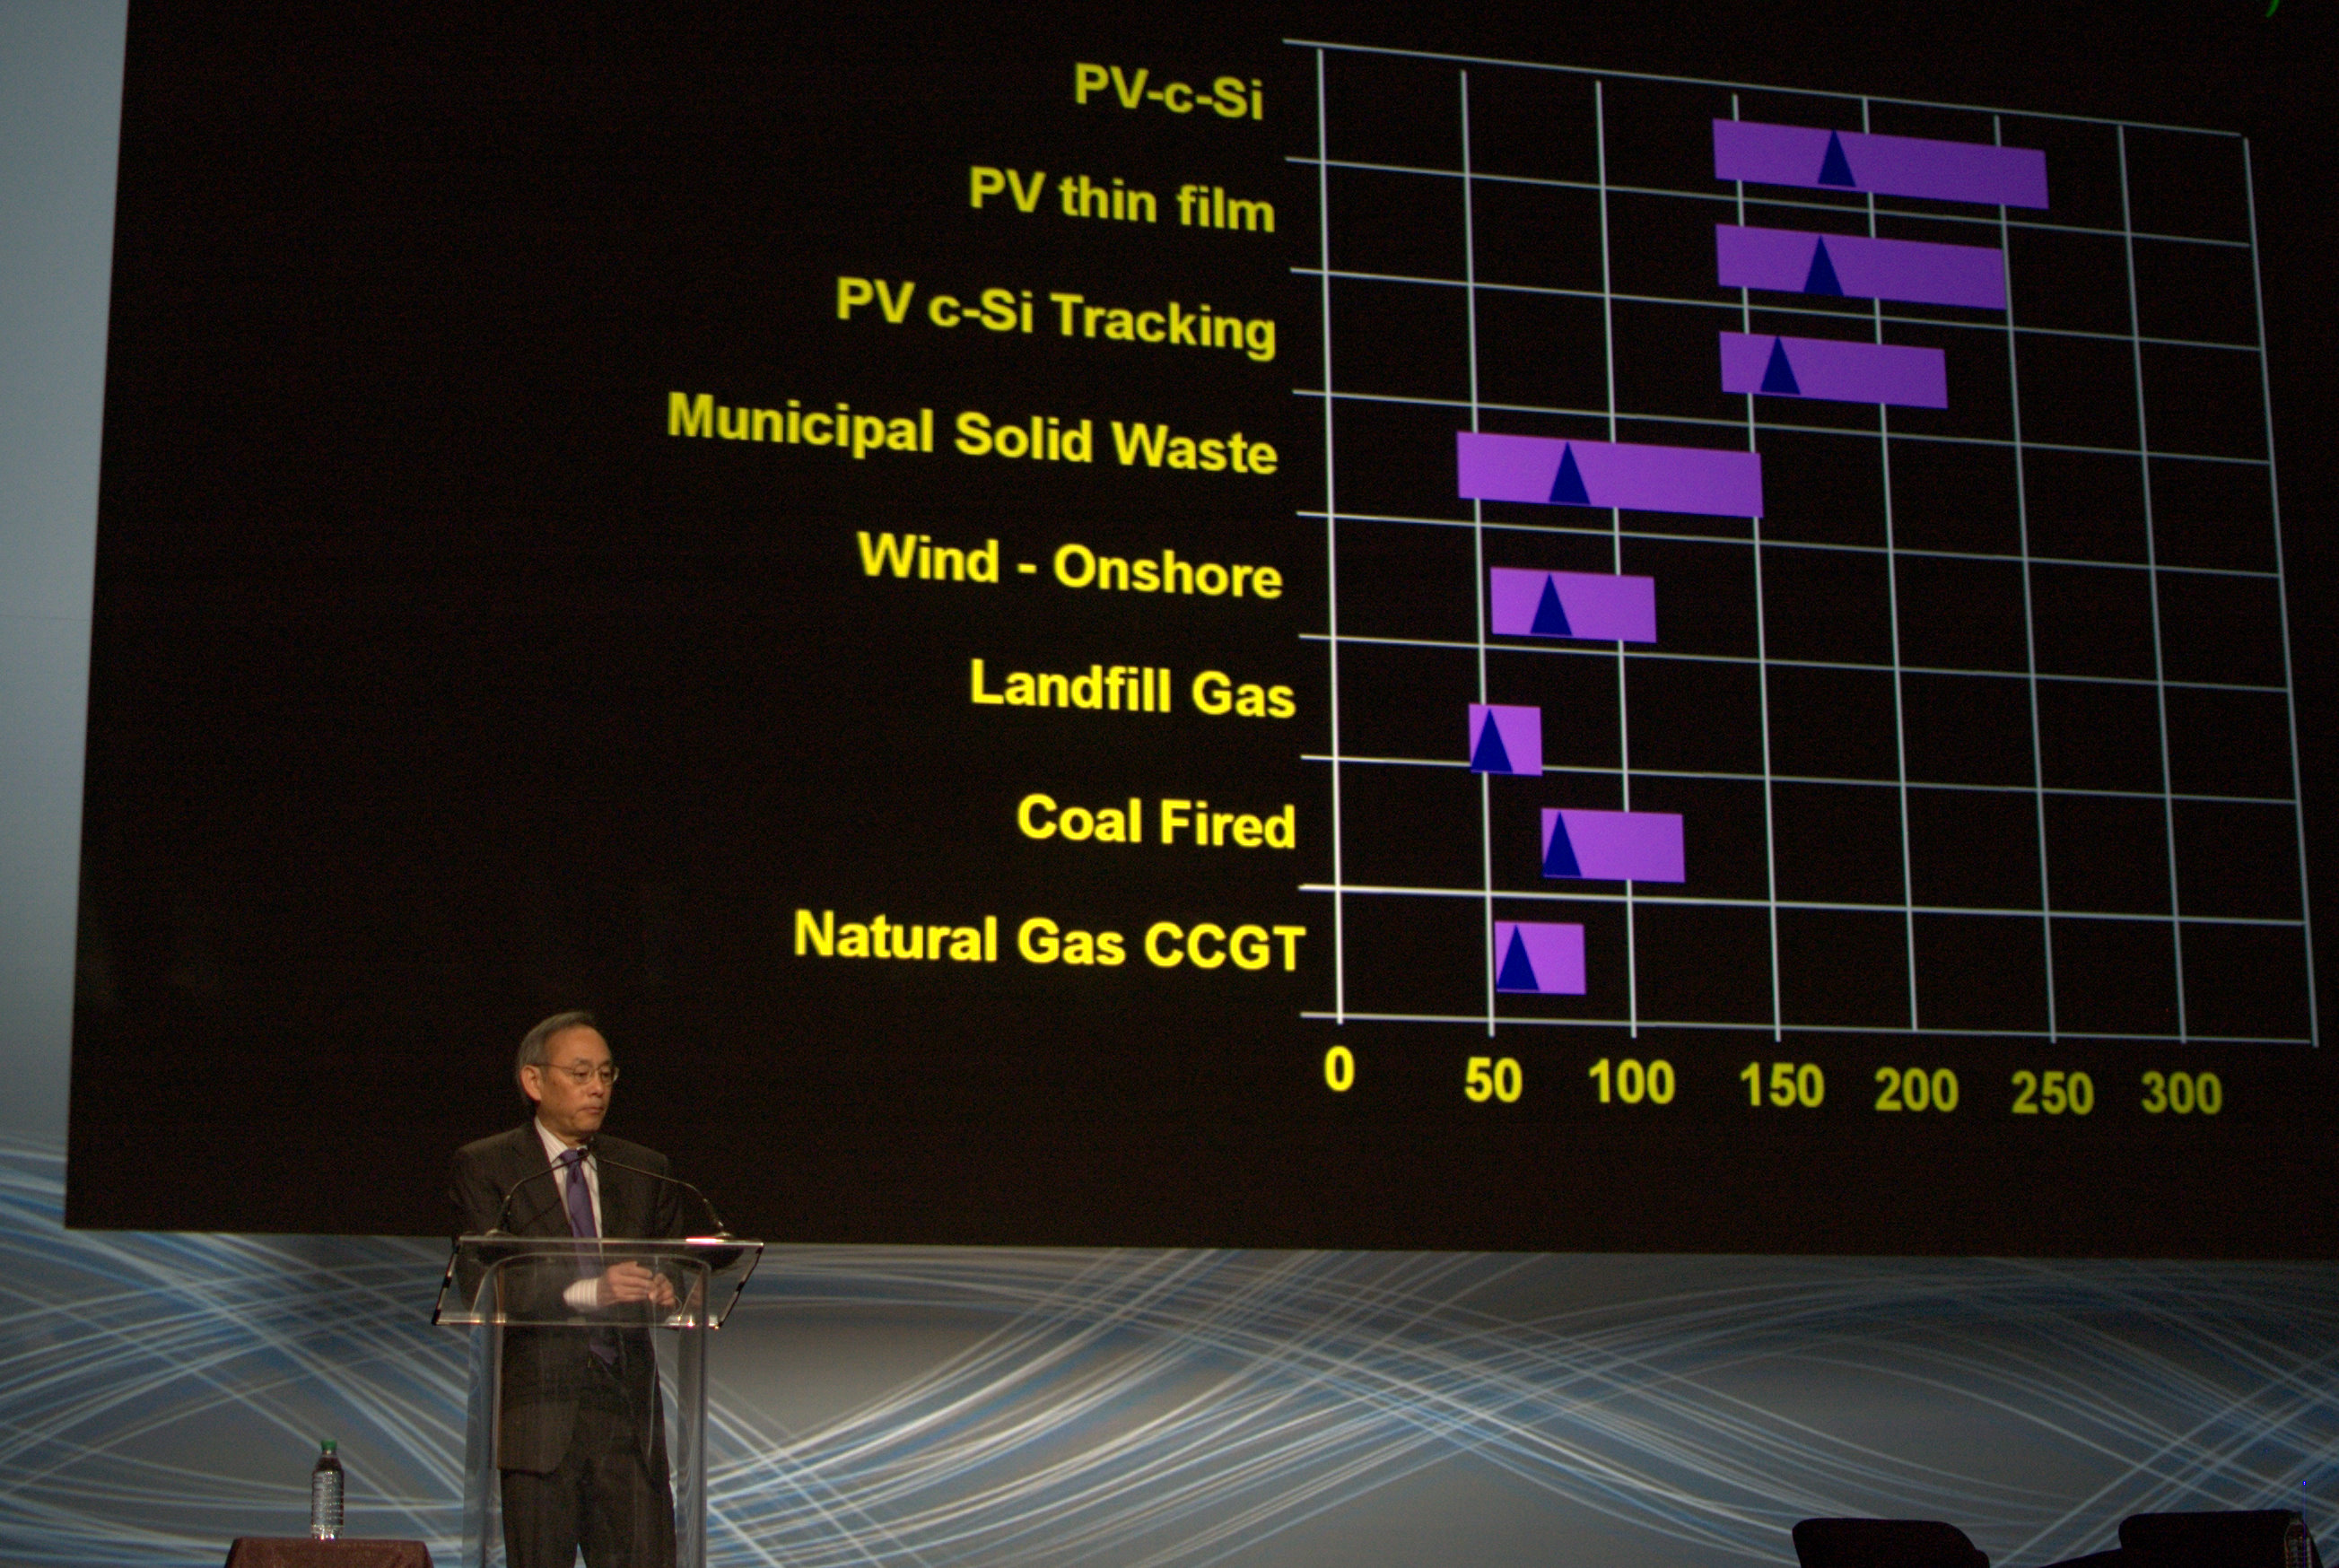 Energy secretary Steven Chu plots the price trends of competing fuels for generating electricity (PV is solar photovoltaics) at the ARPA-E Summit.